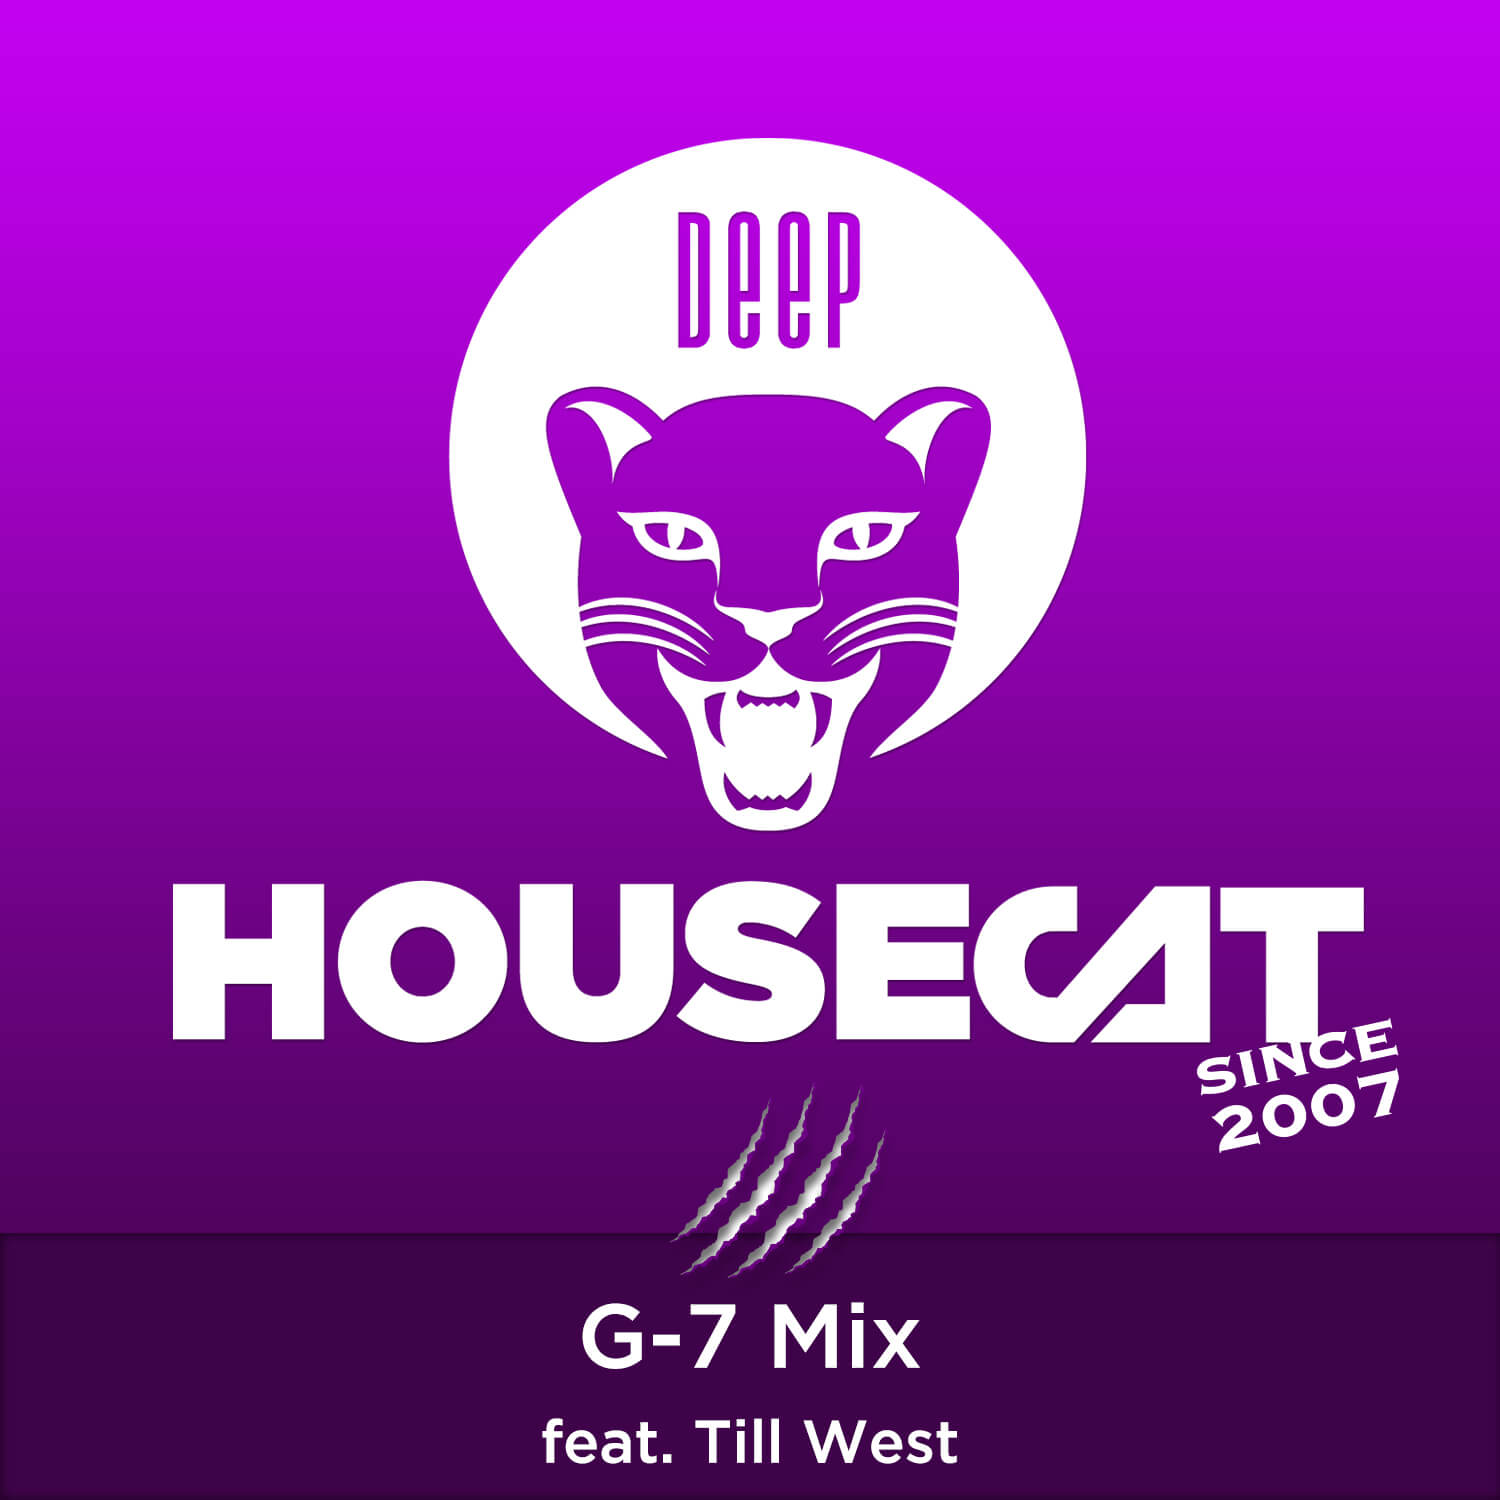 Best Episodes of DEEP HOUSE LOUNGE - EXCLUSIVE DEEP HOUSE